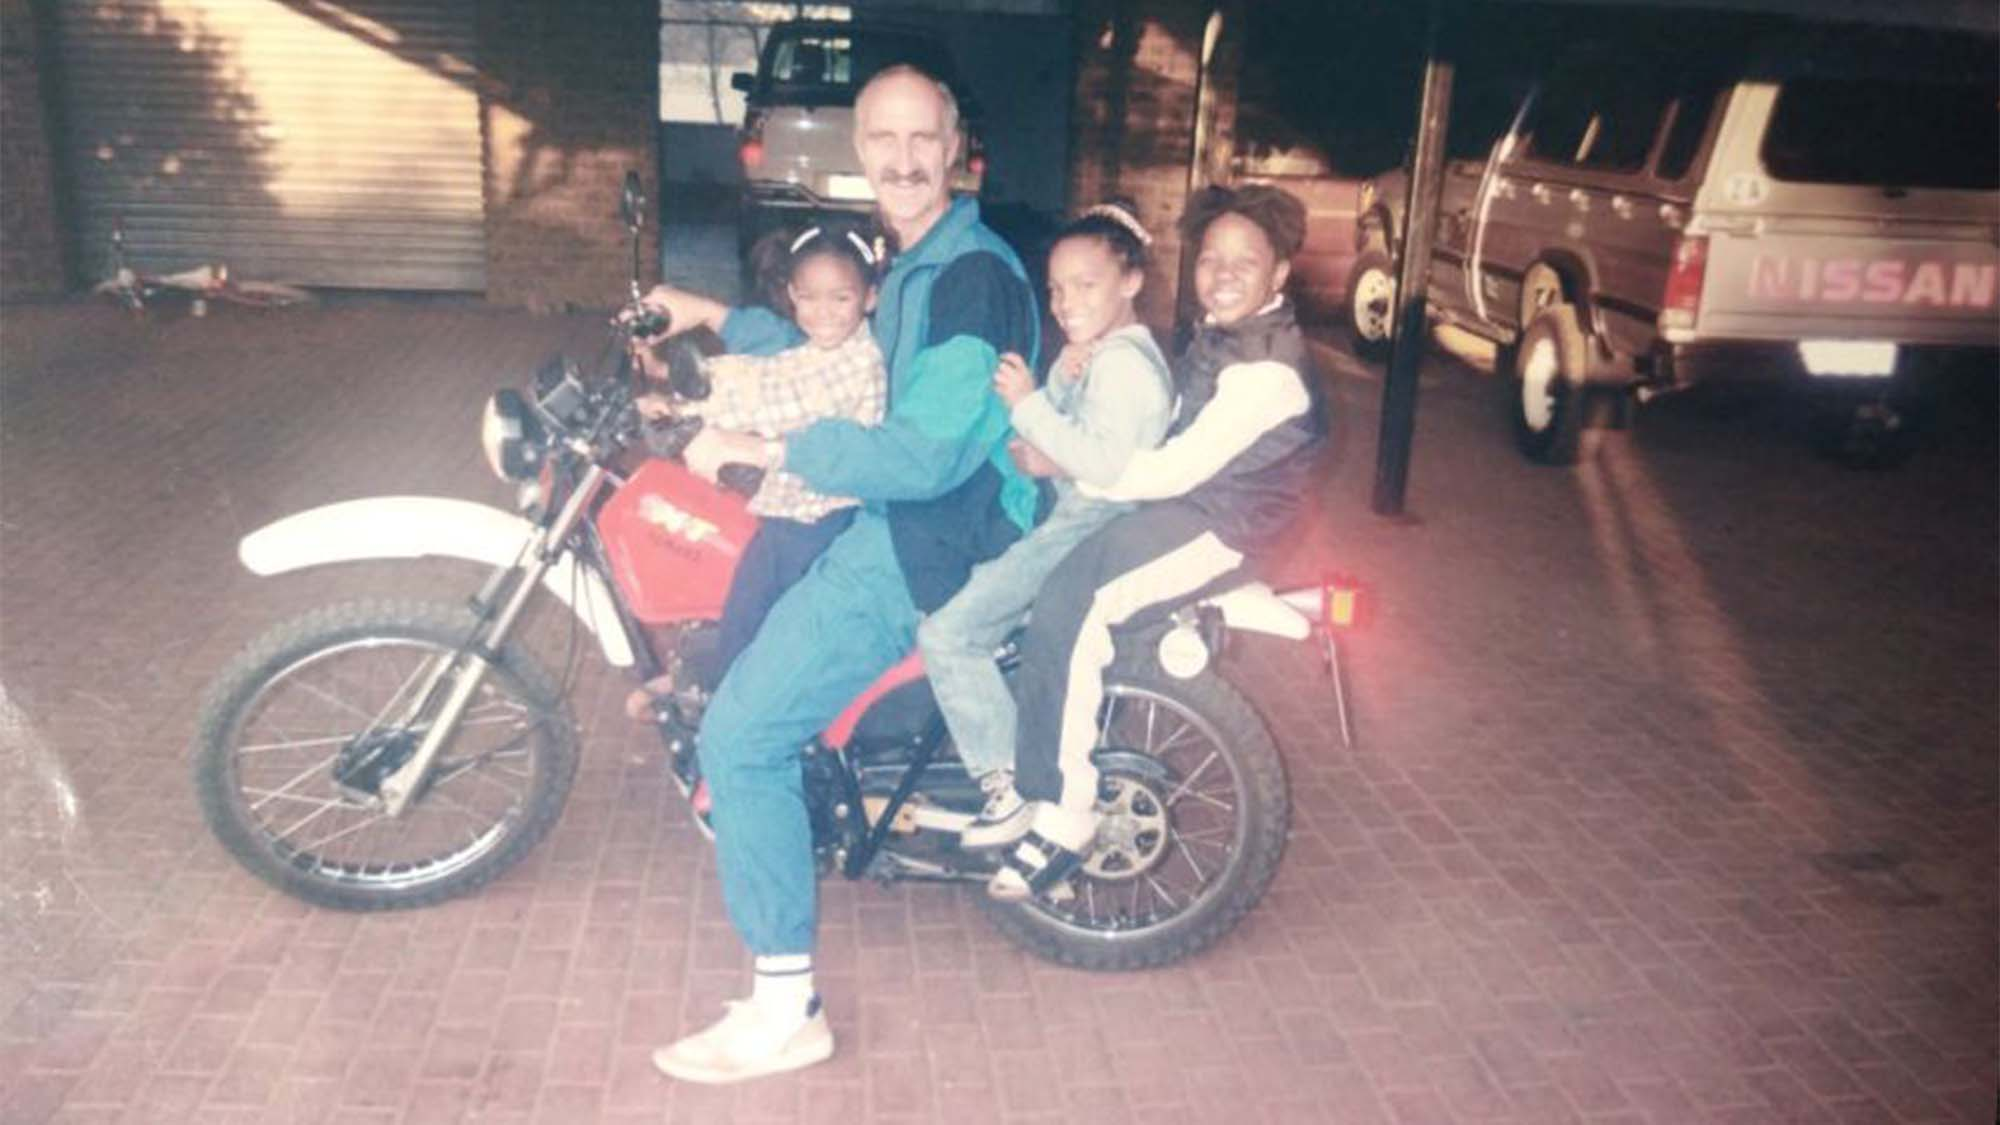 Wilco and their family on their motorbike provided by God.